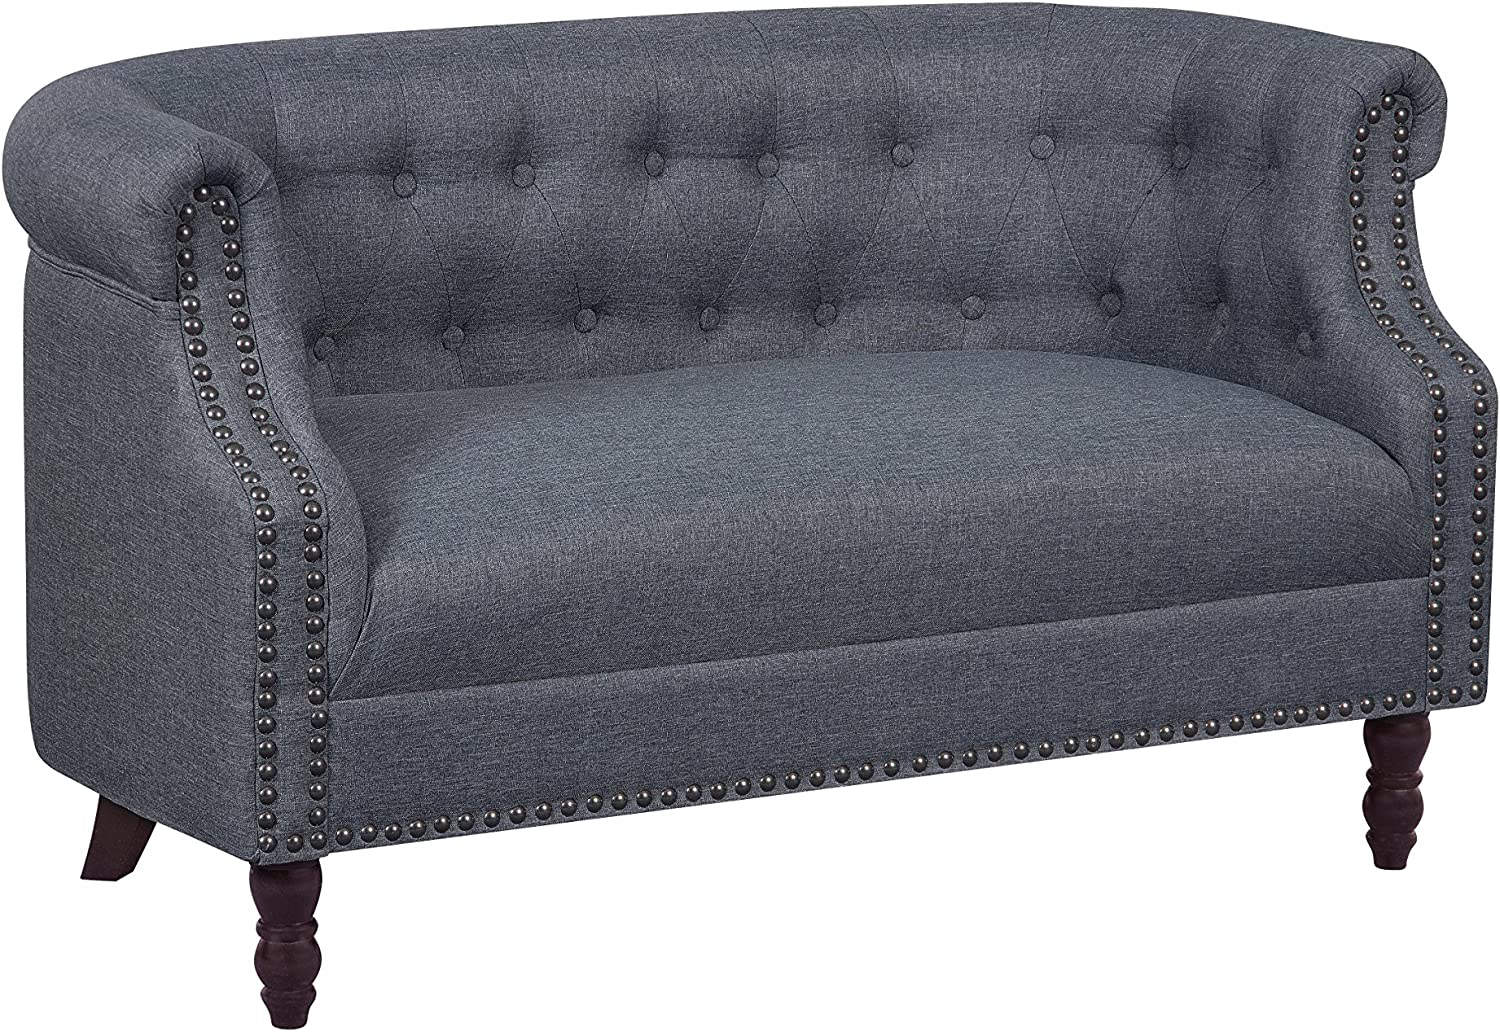 Container Furniture Direct Regular store Huton Collection low-pricing Upholst Contemporary